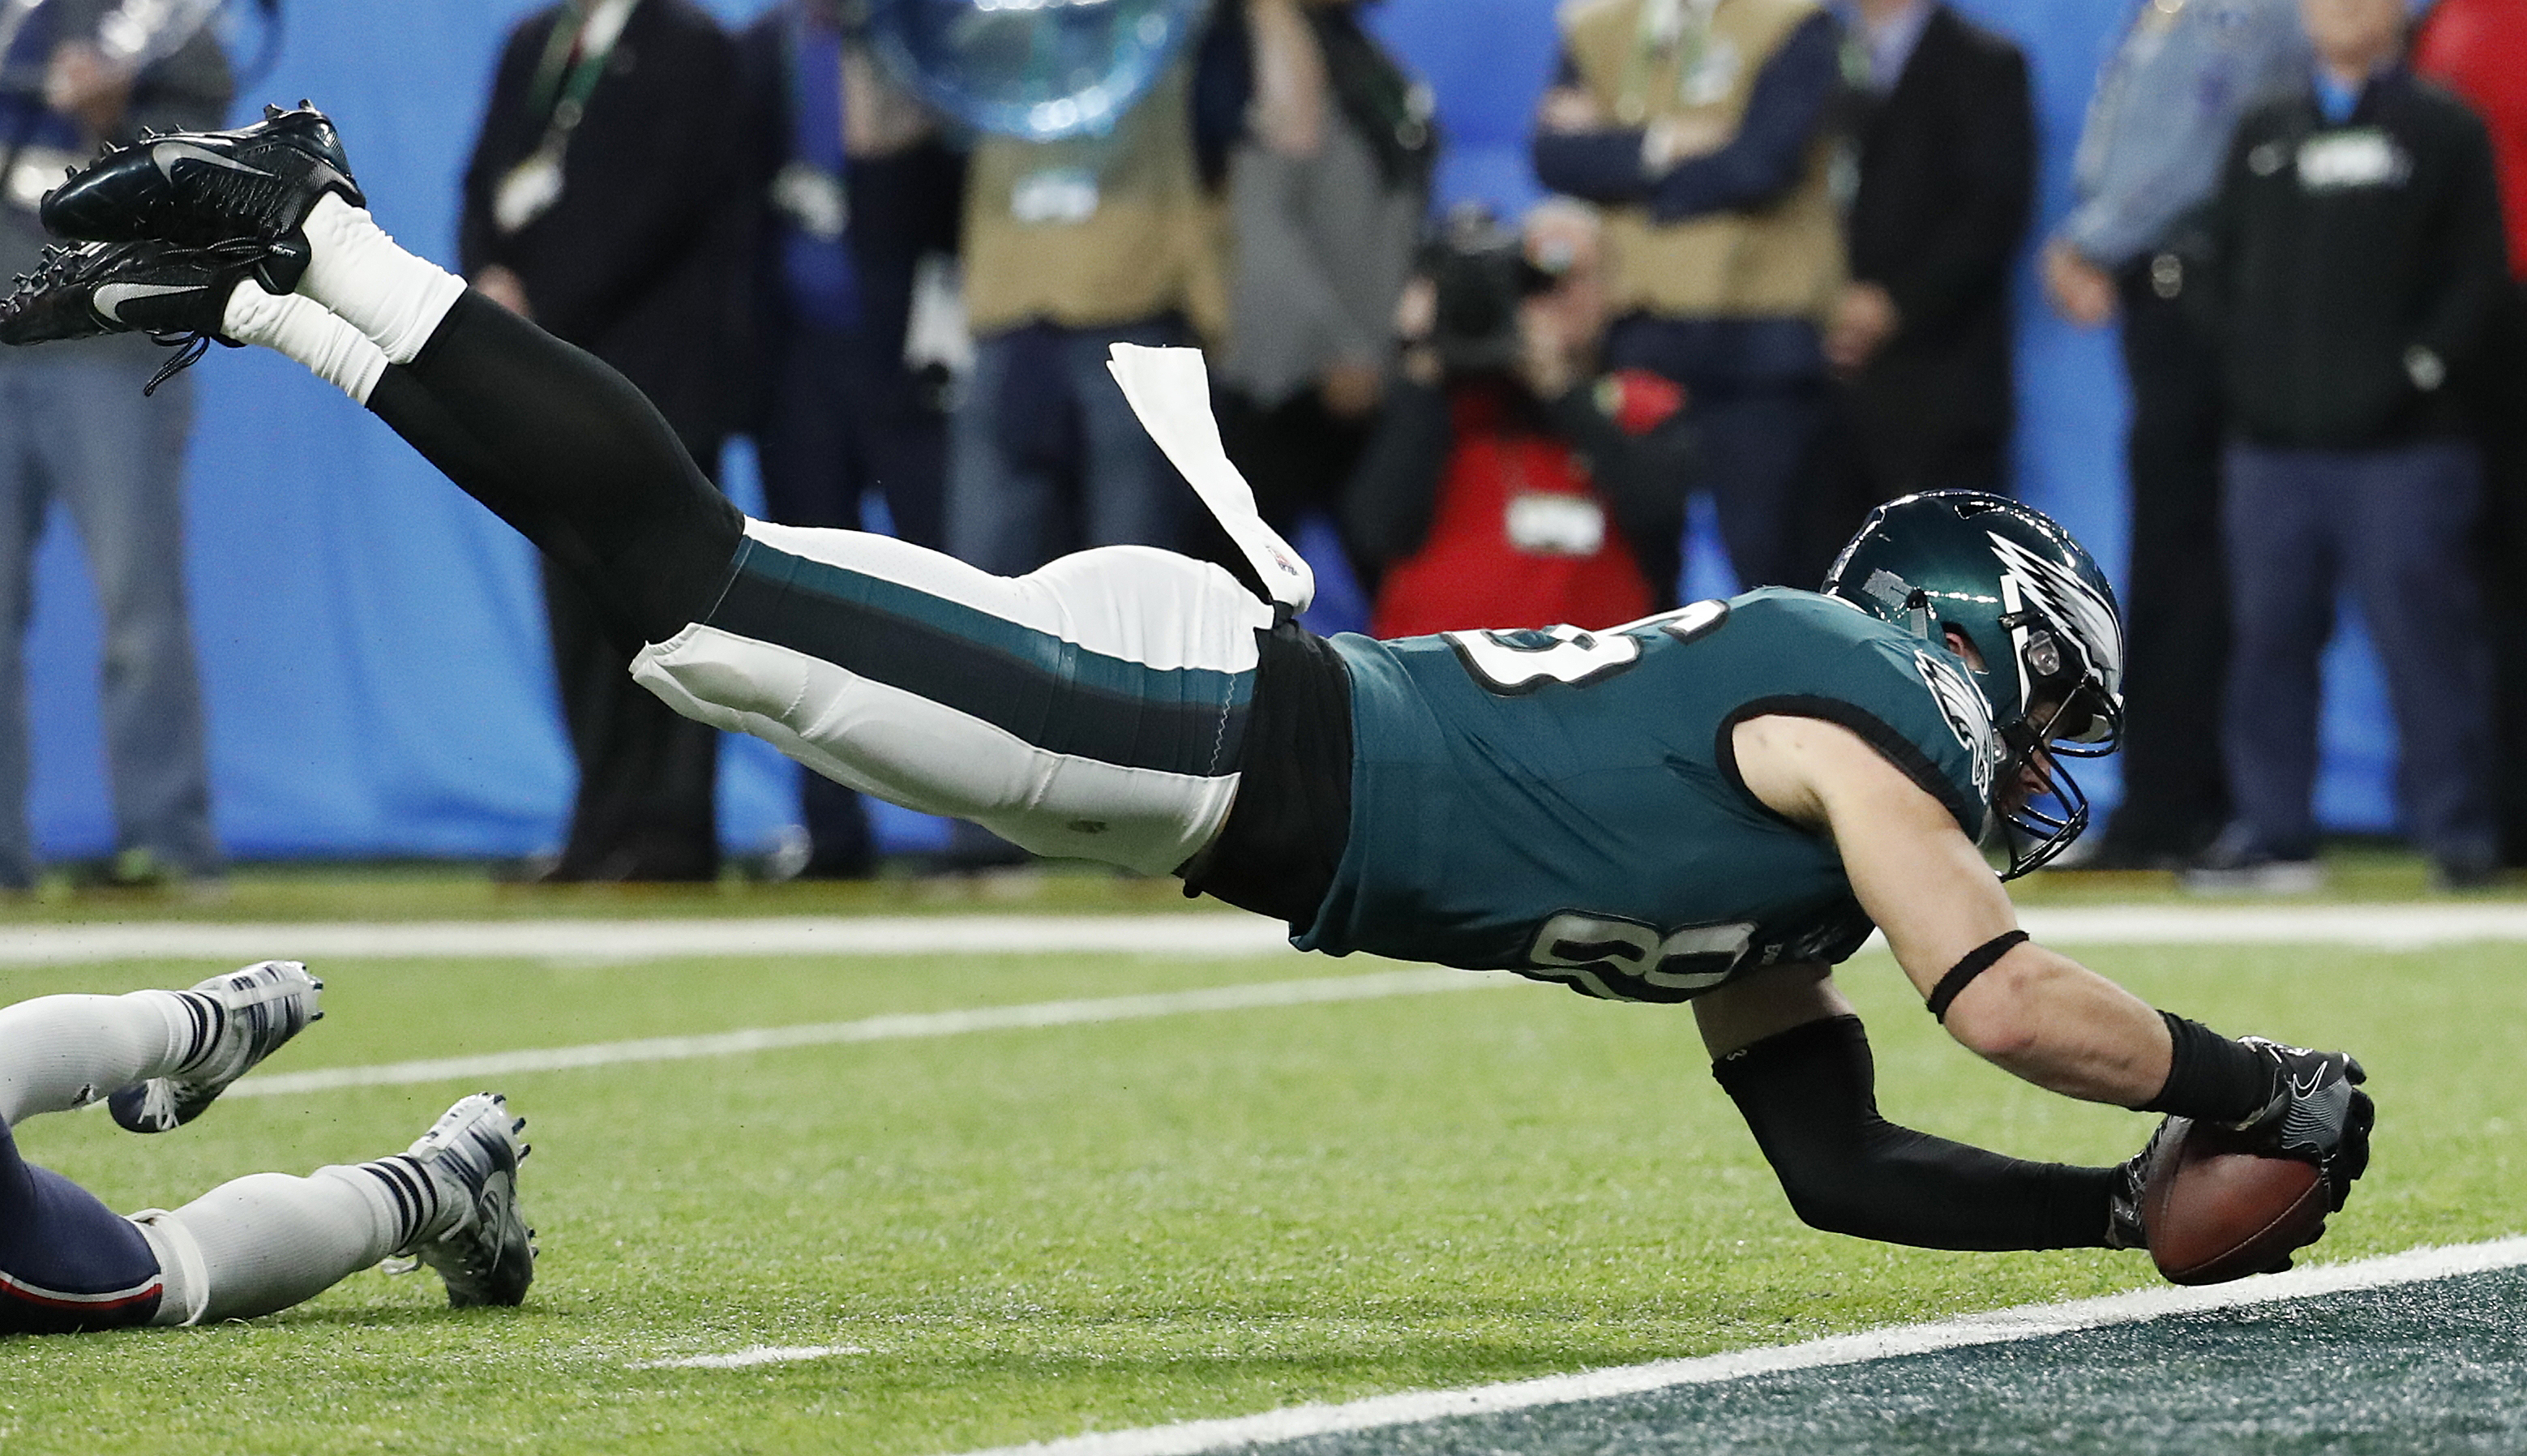 "<div class=""meta image-caption""><div class=""origin-logo origin-image ap""><span>AP</span></div><span class=""caption-text"">Philadelphia Eagles' Zach Ertz catches a touchdown pass during the second half of the NFL Super Bowl 52 football game against the New England Patriots. (AP Photo/Matt York)</span></div>"